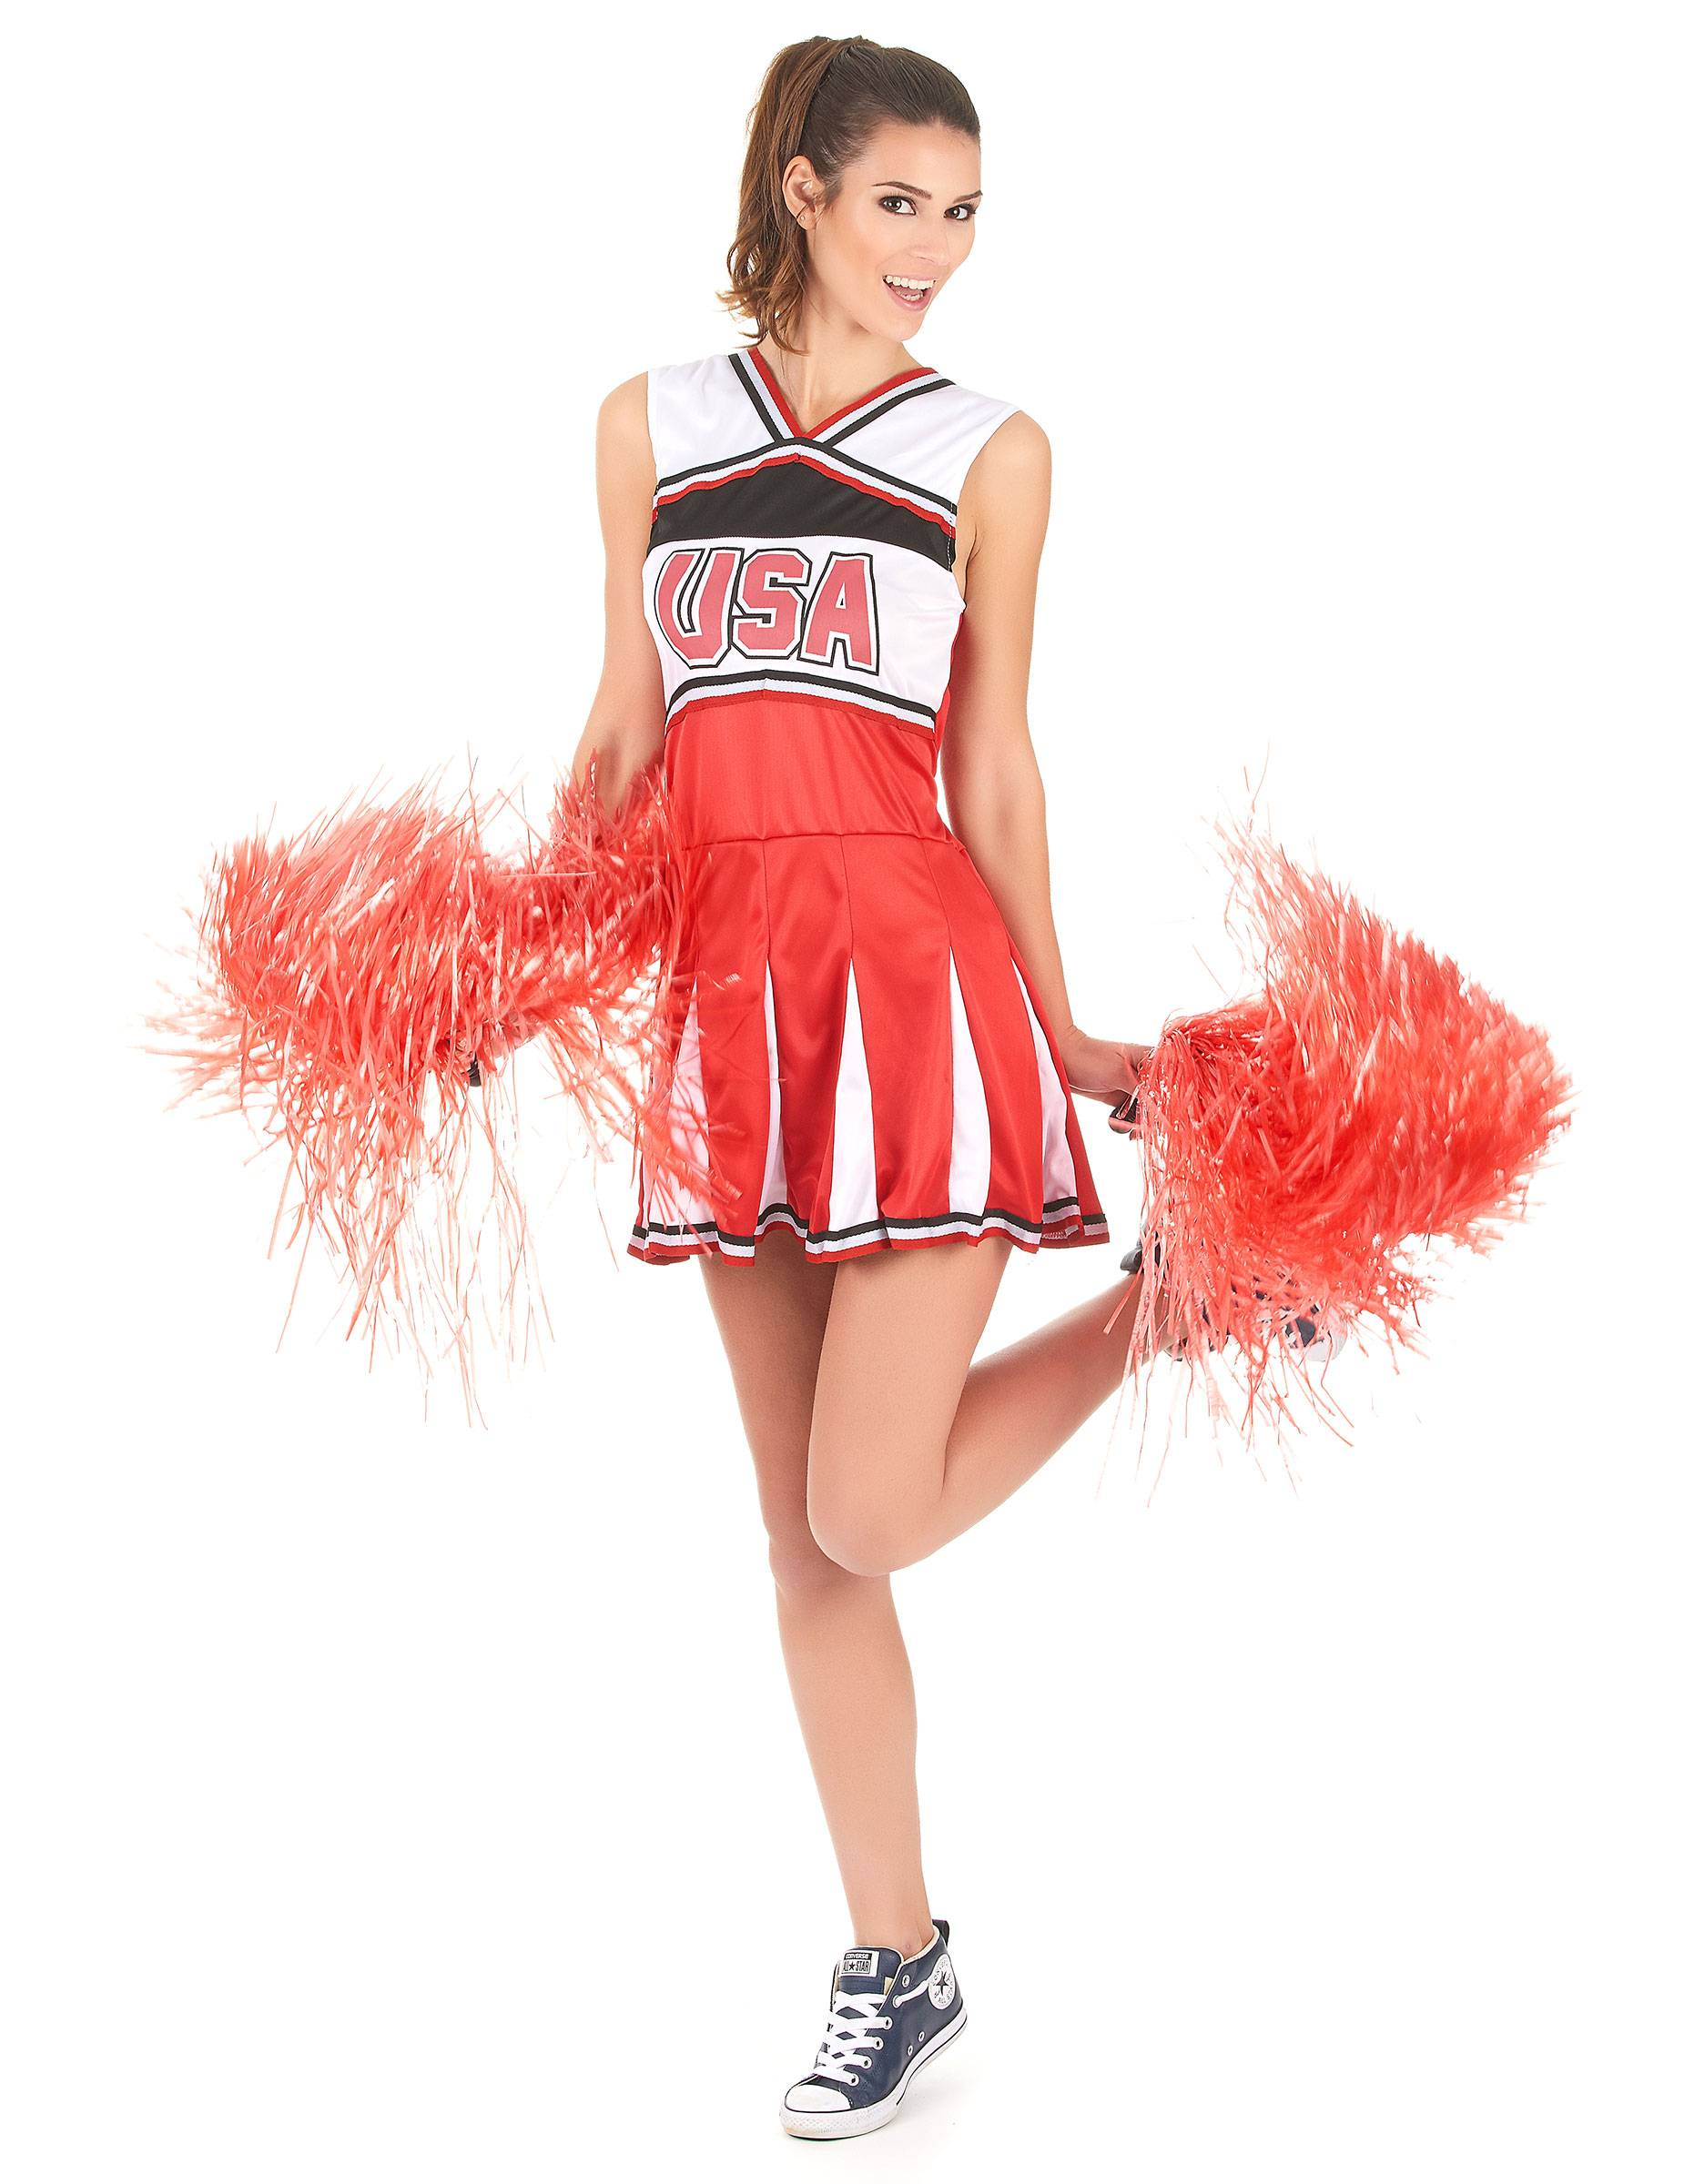 Deguisetoi Déguisement pompom girl USA femme - Taille: XS / S